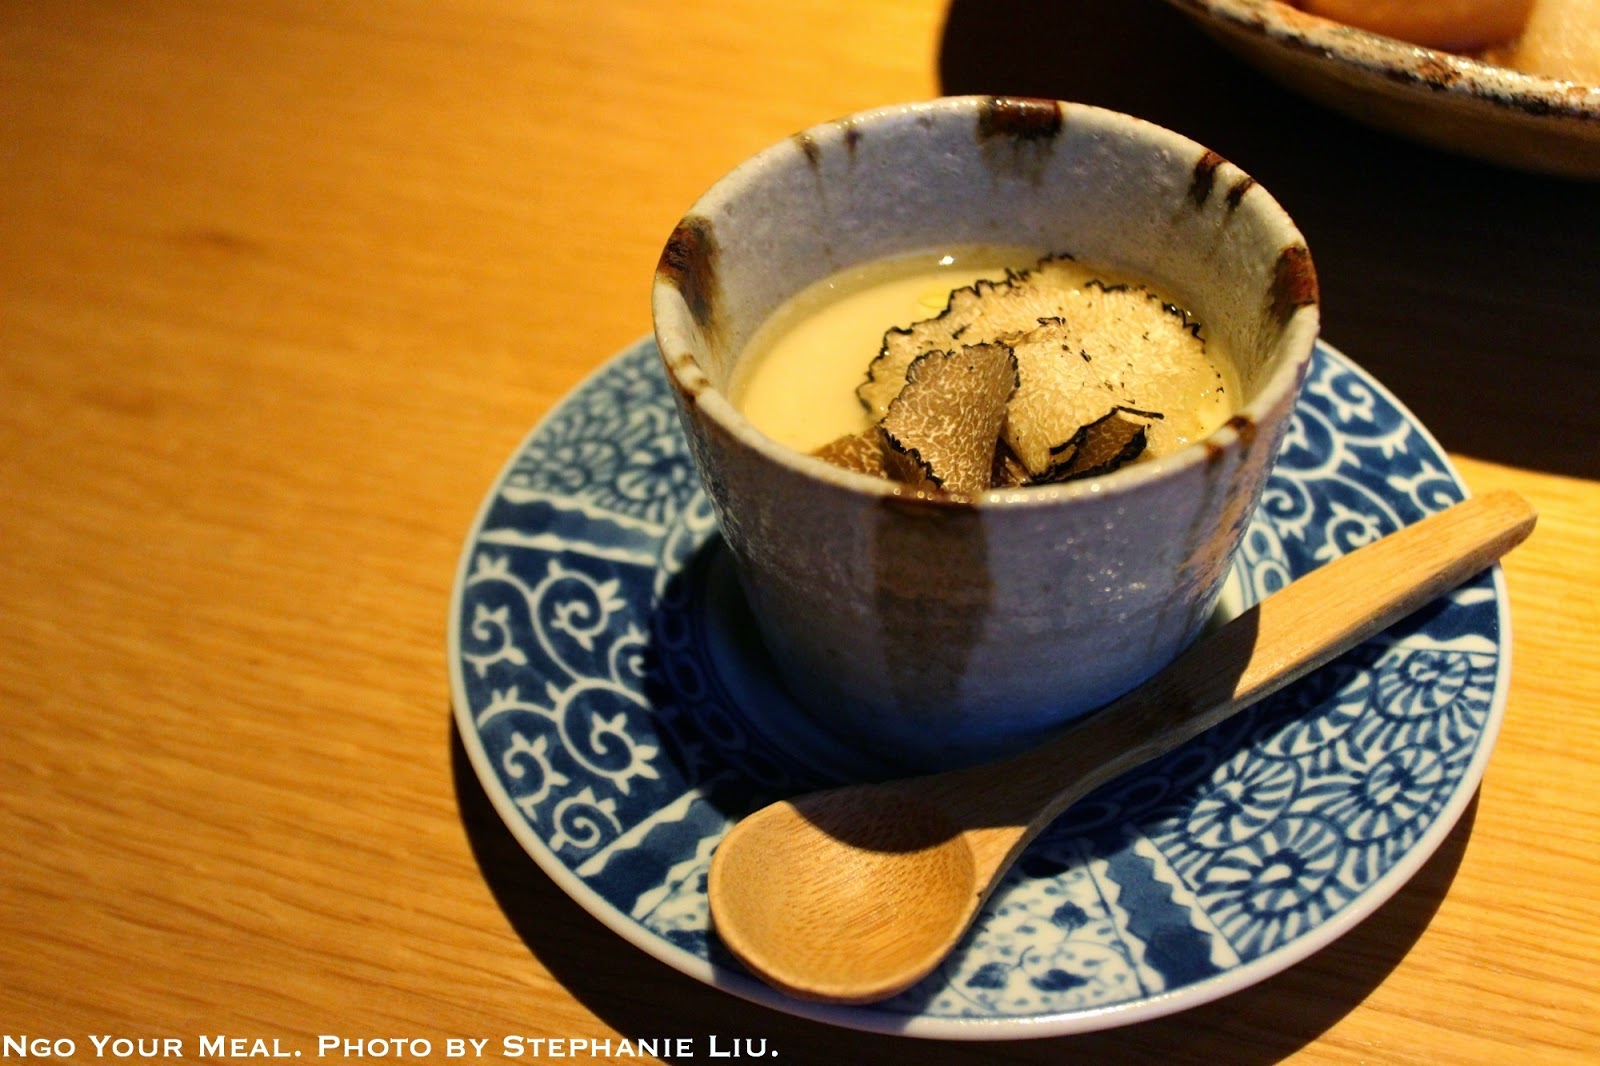 Black Truffle Chawanmushi with Shaved Black Truffles at EN Japanese Brasserie